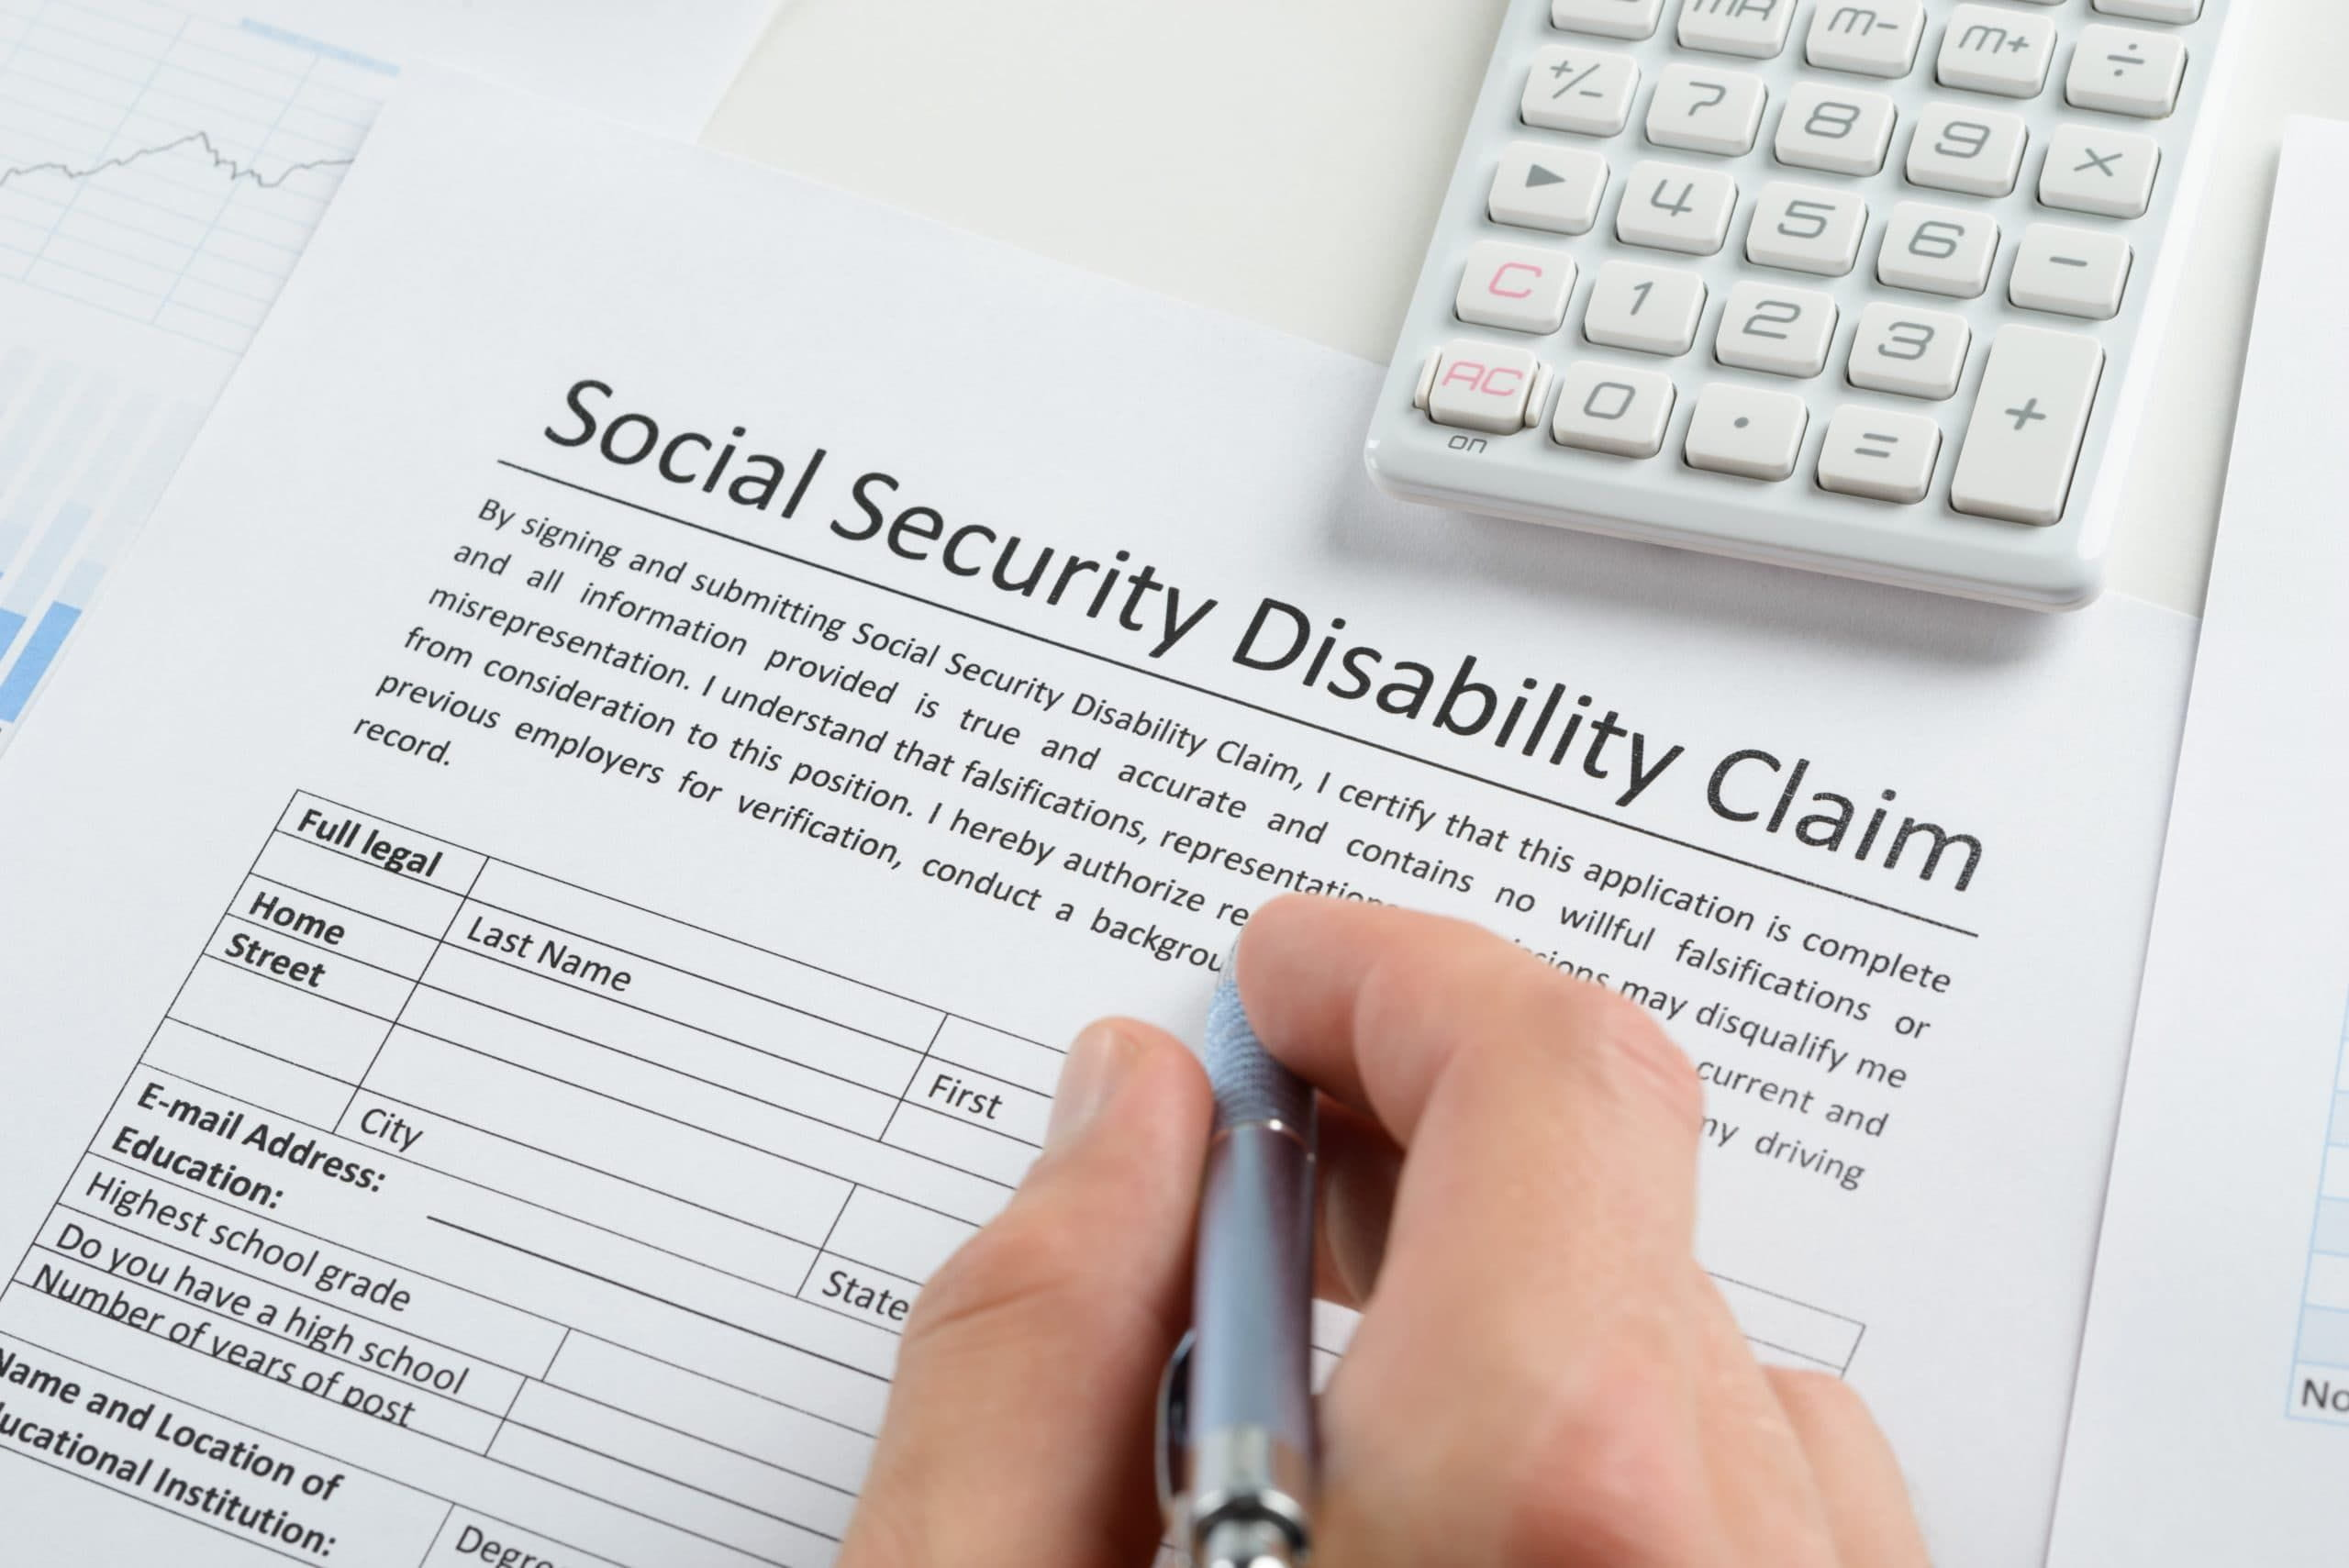 Filling up social security disability form.